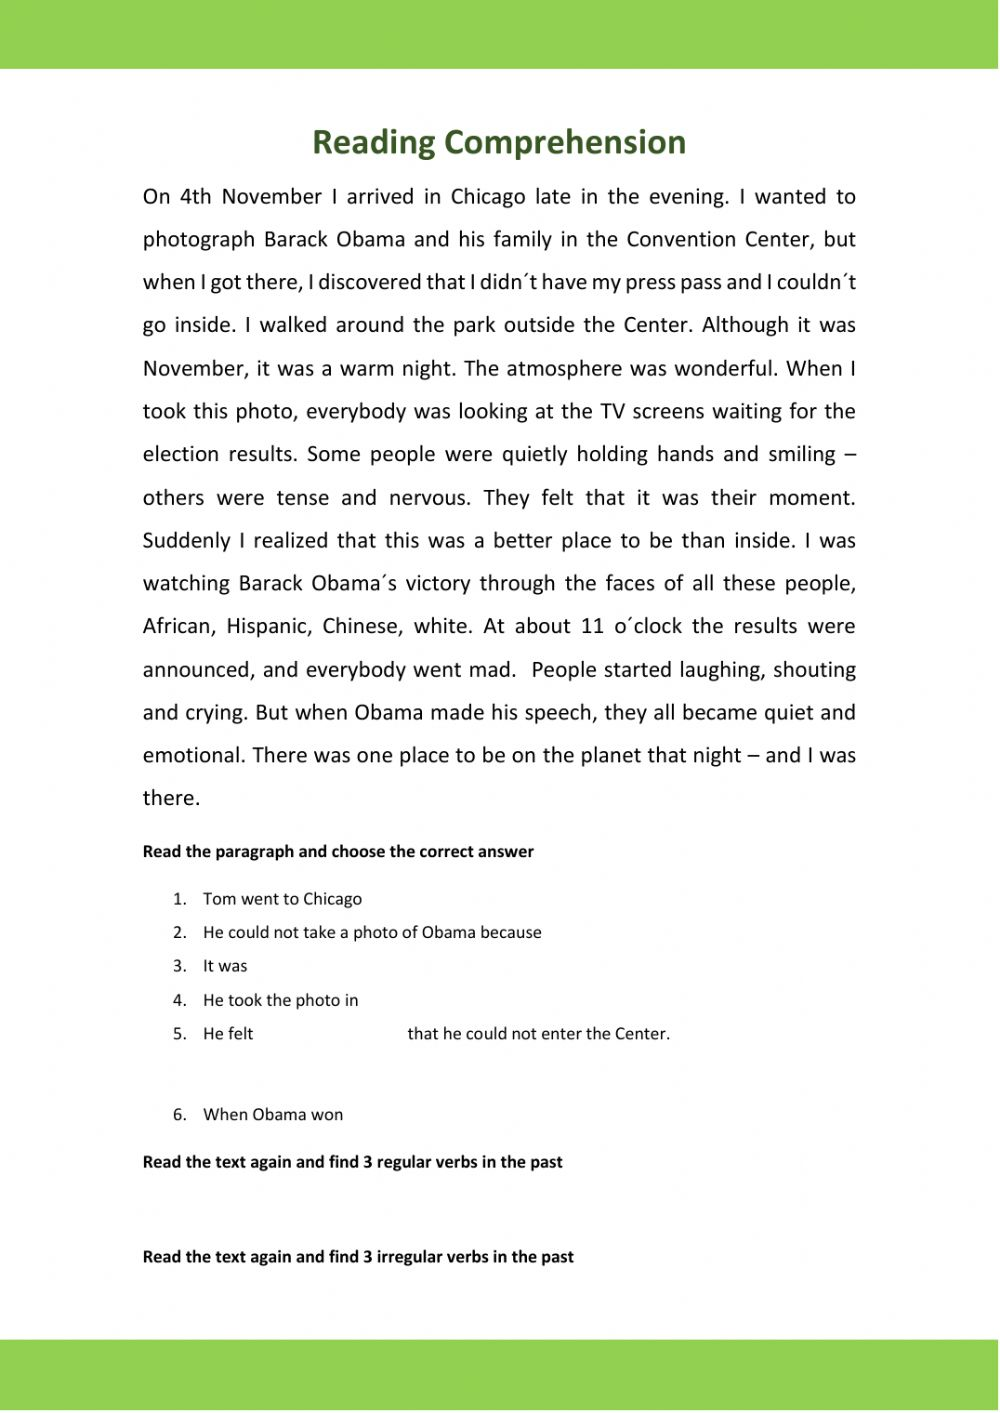 medium resolution of Reading Comprehension (Past Continuous) worksheet